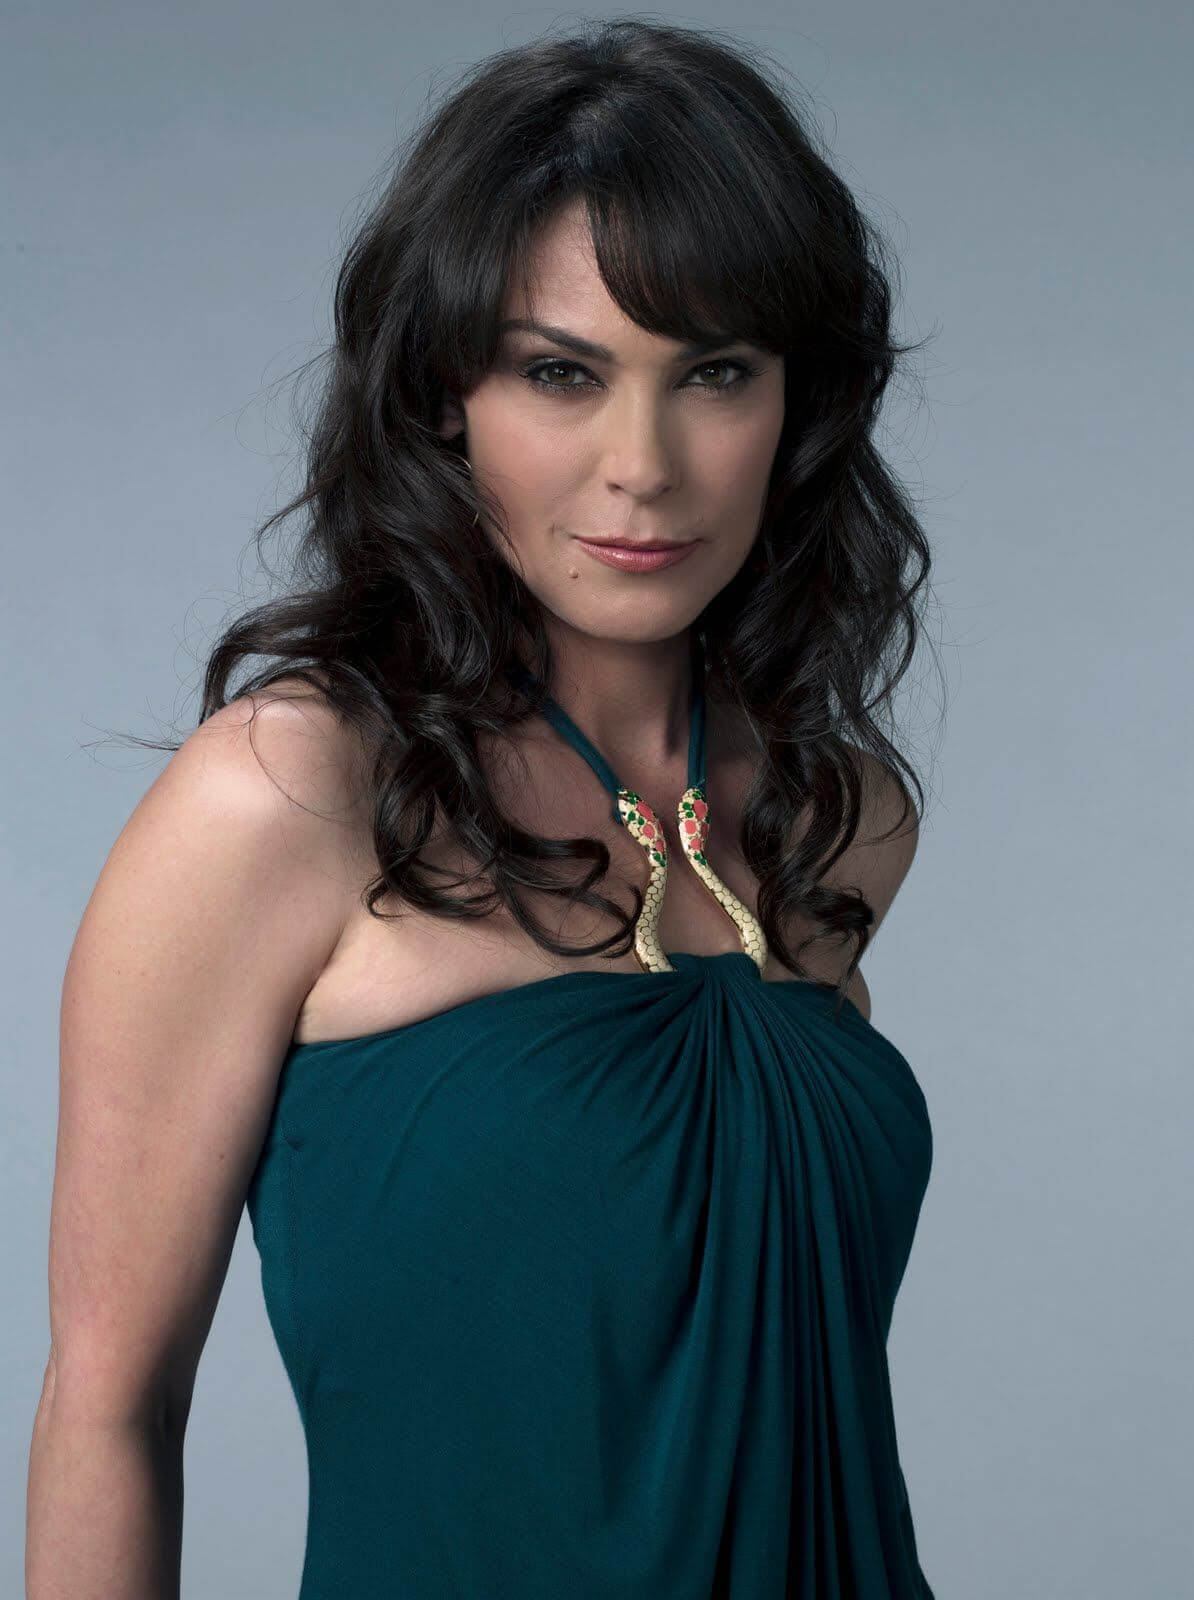 Michelle Forbes sexy busty pics